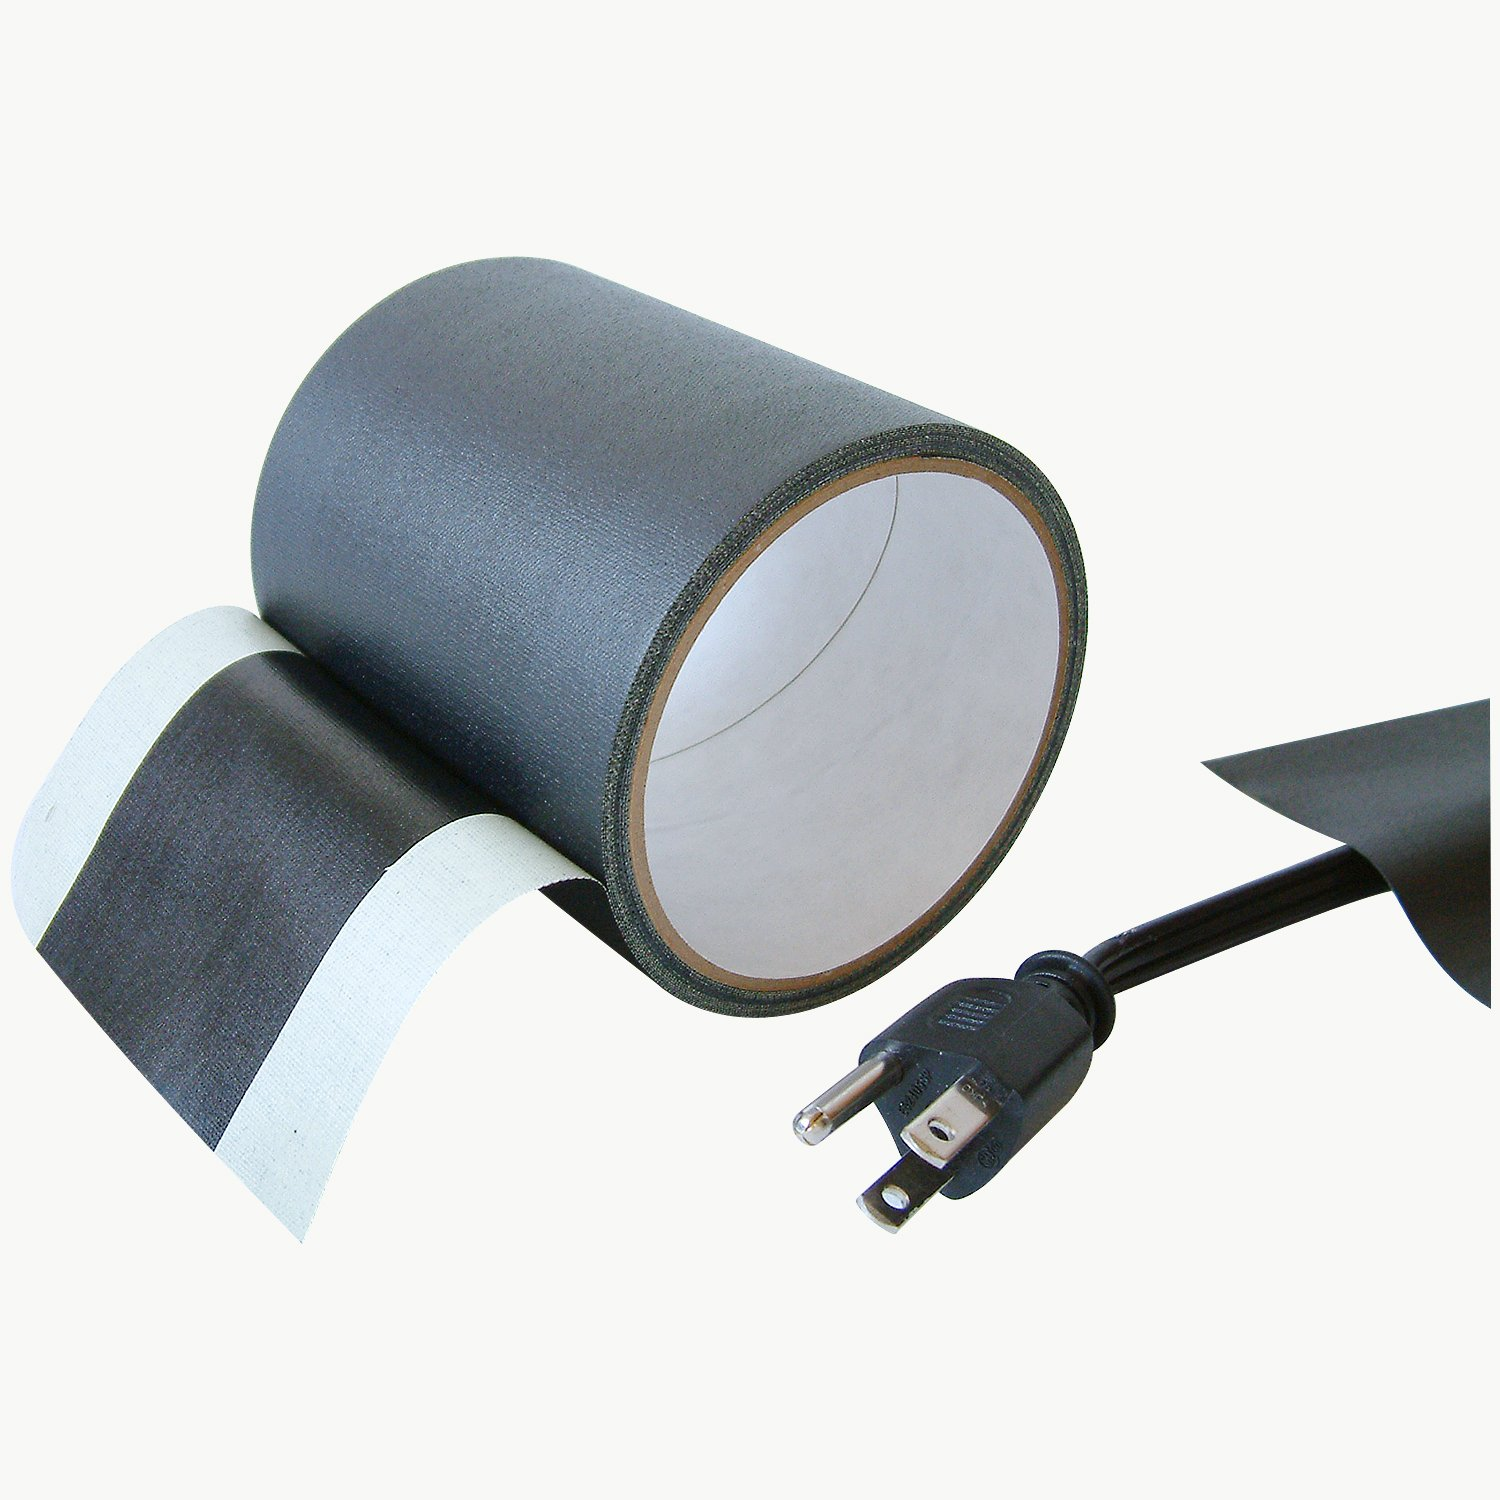 Amazon.com: JVCC Wire-Line Cable Cover Tape: 4 in. x 30 ft. (Black ...